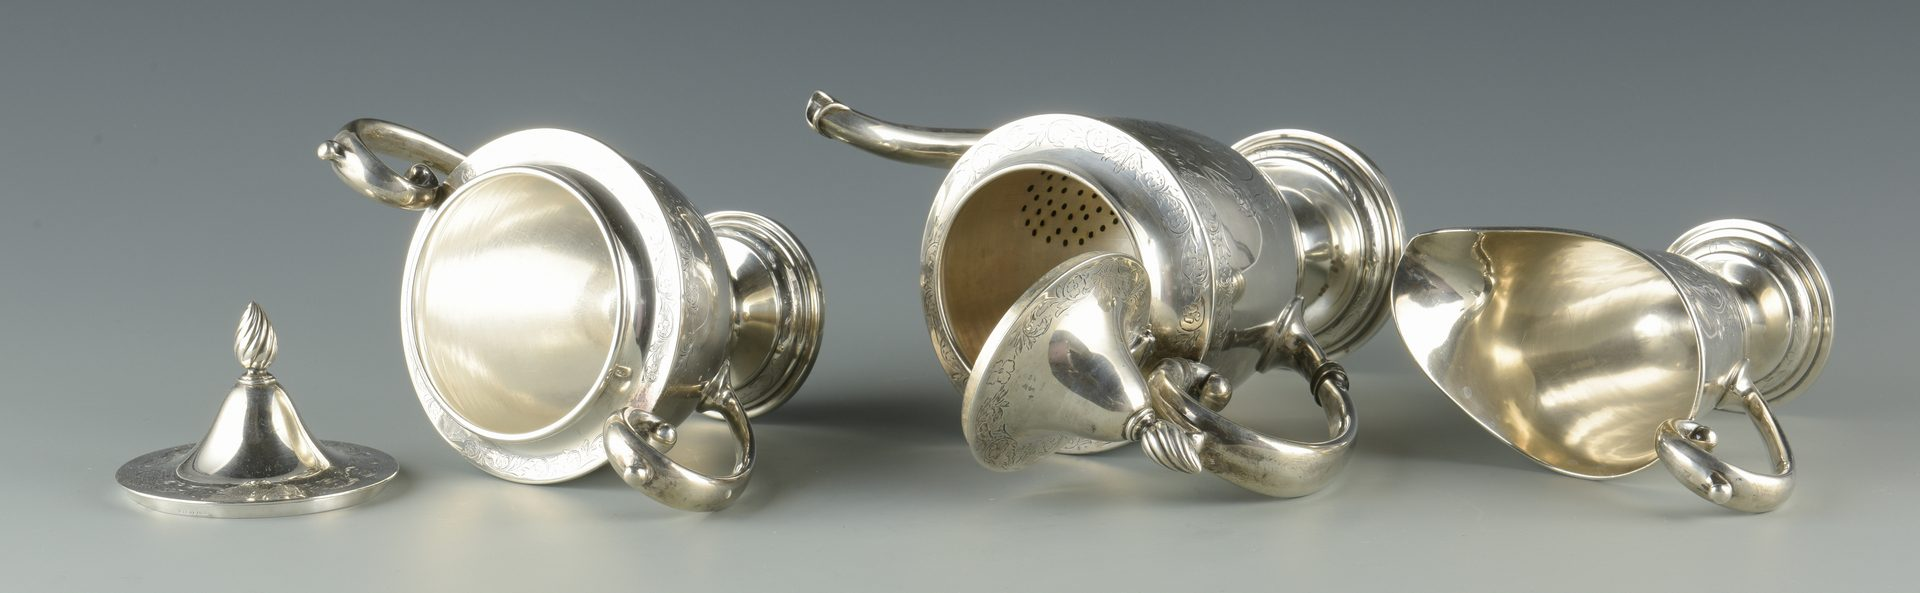 Lot 927: Meriden Sterling Tea Set, 3 pcs.